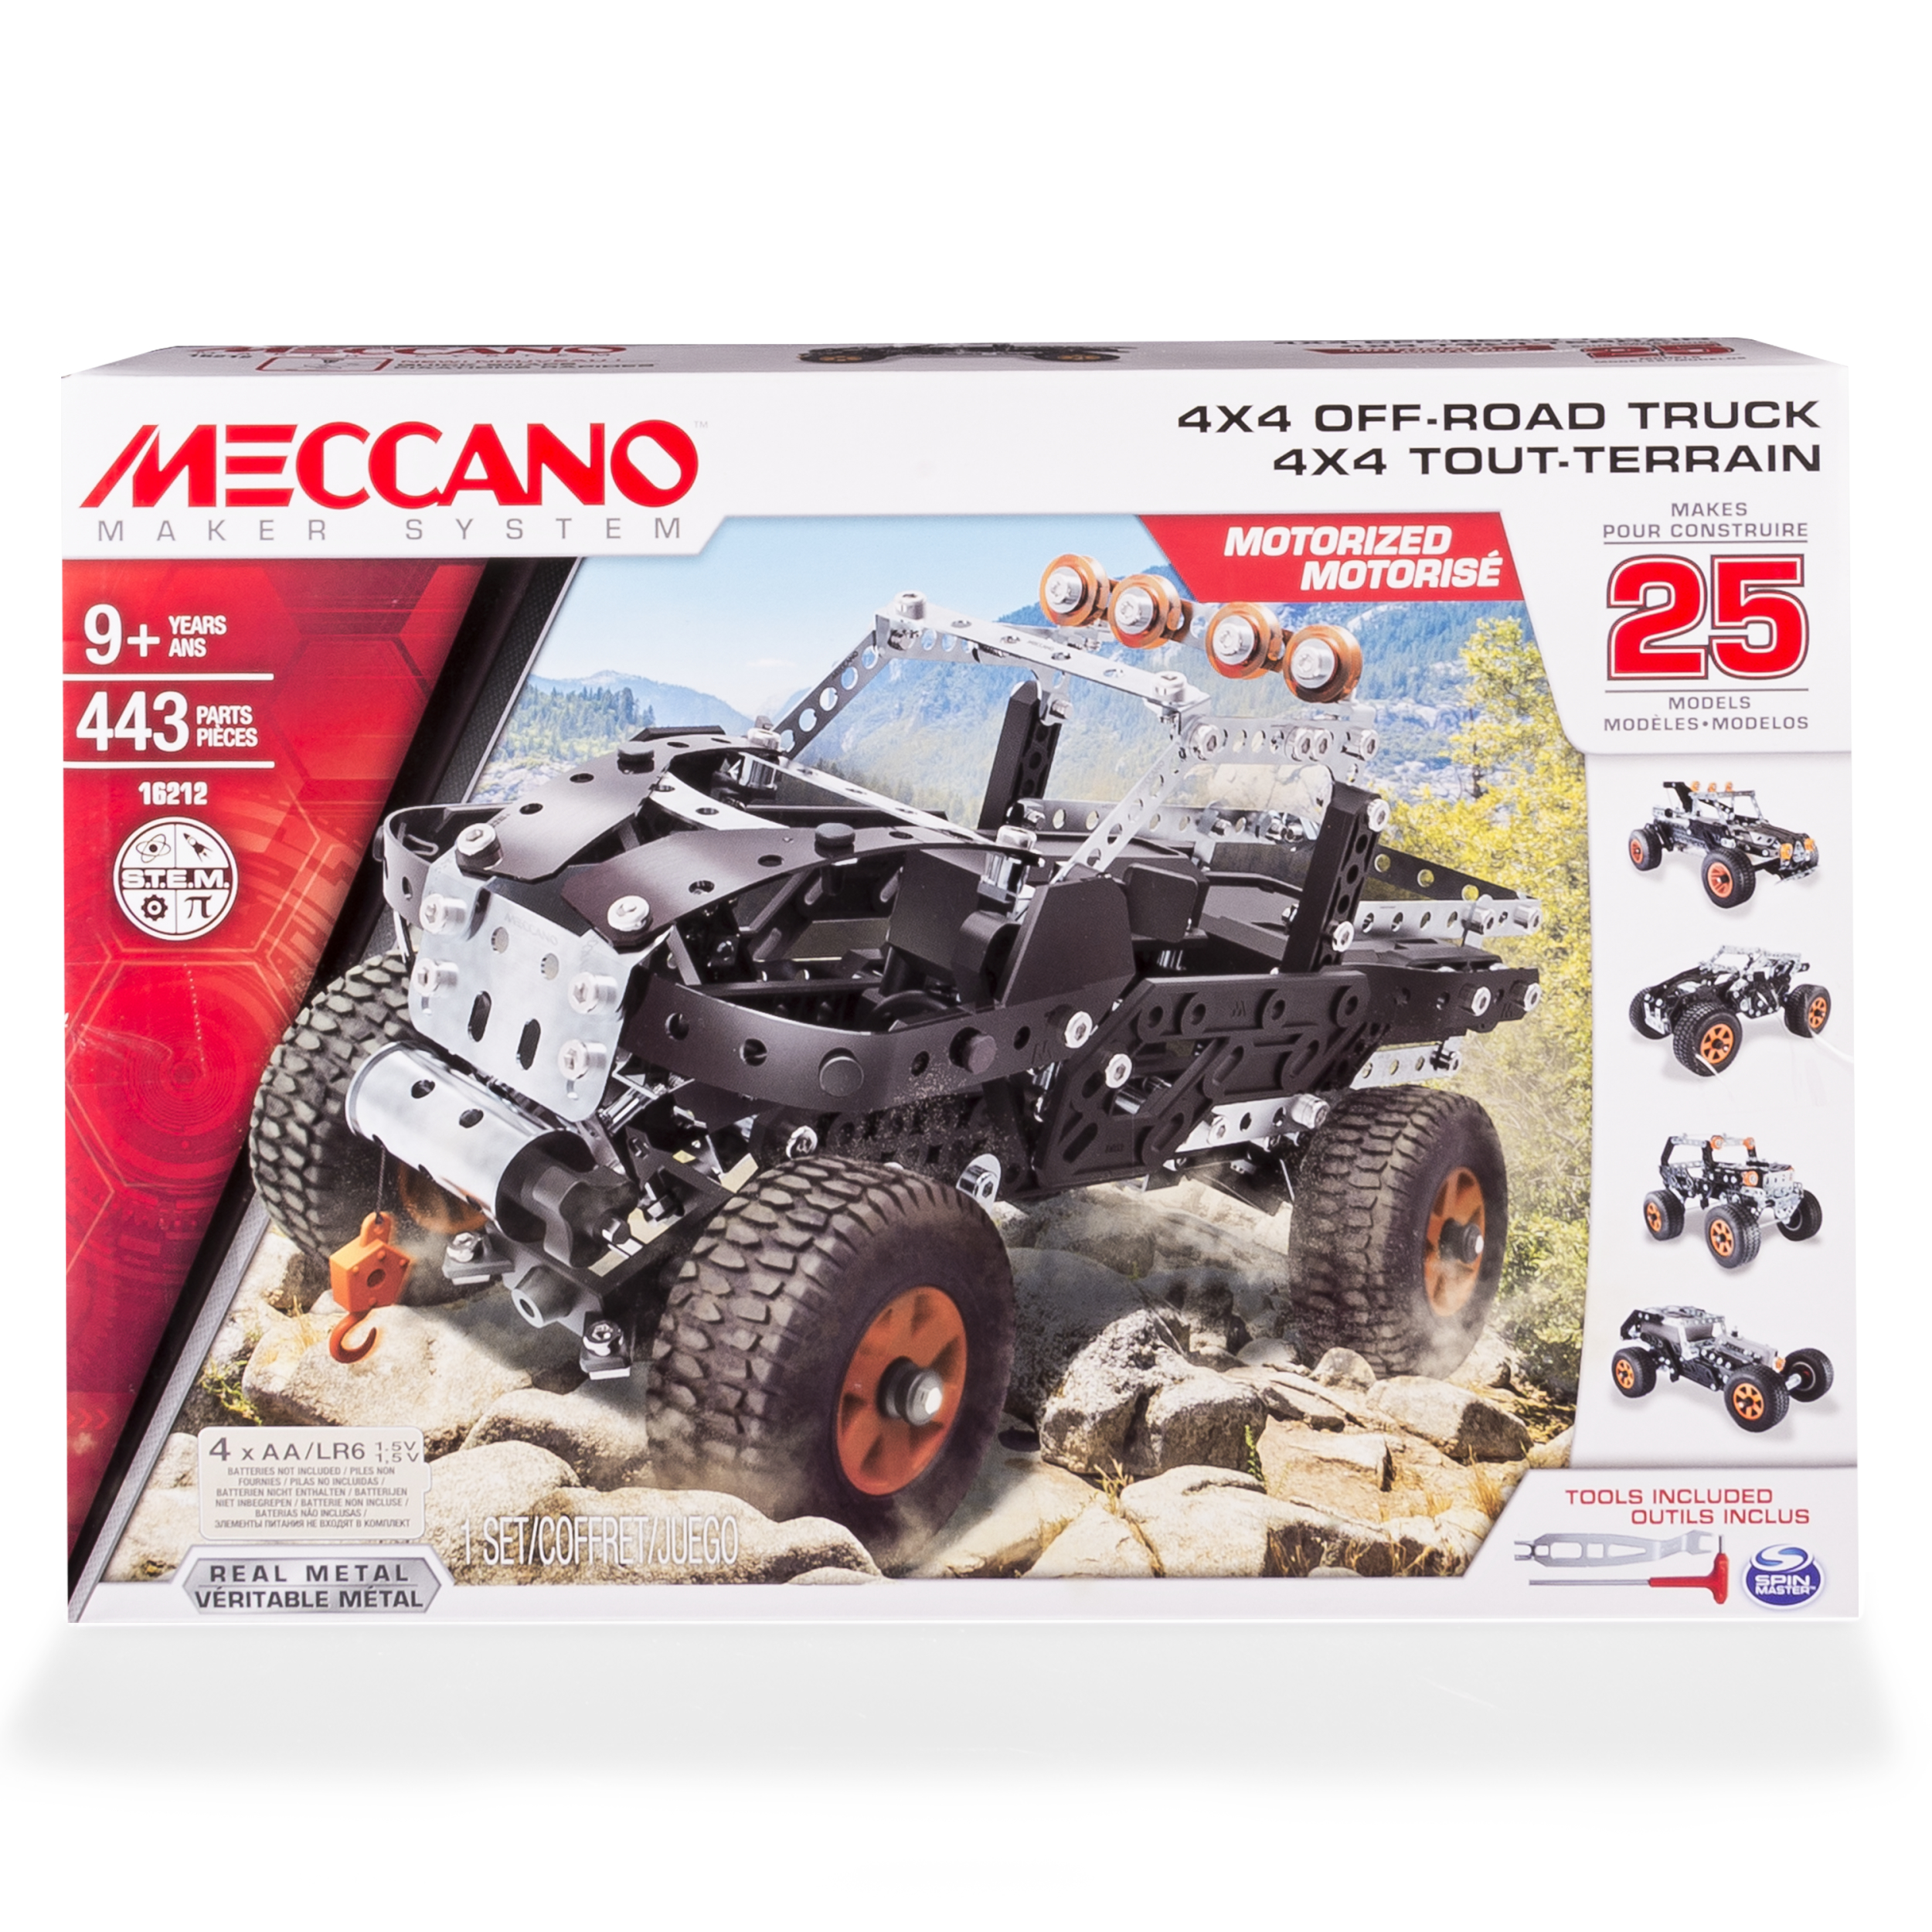 Erector by Meccano, 4x4 Off-Road Truck 25 Model Building Set, 443 Pieces, For Ages 9 and up, STEM Contruction Education Toy